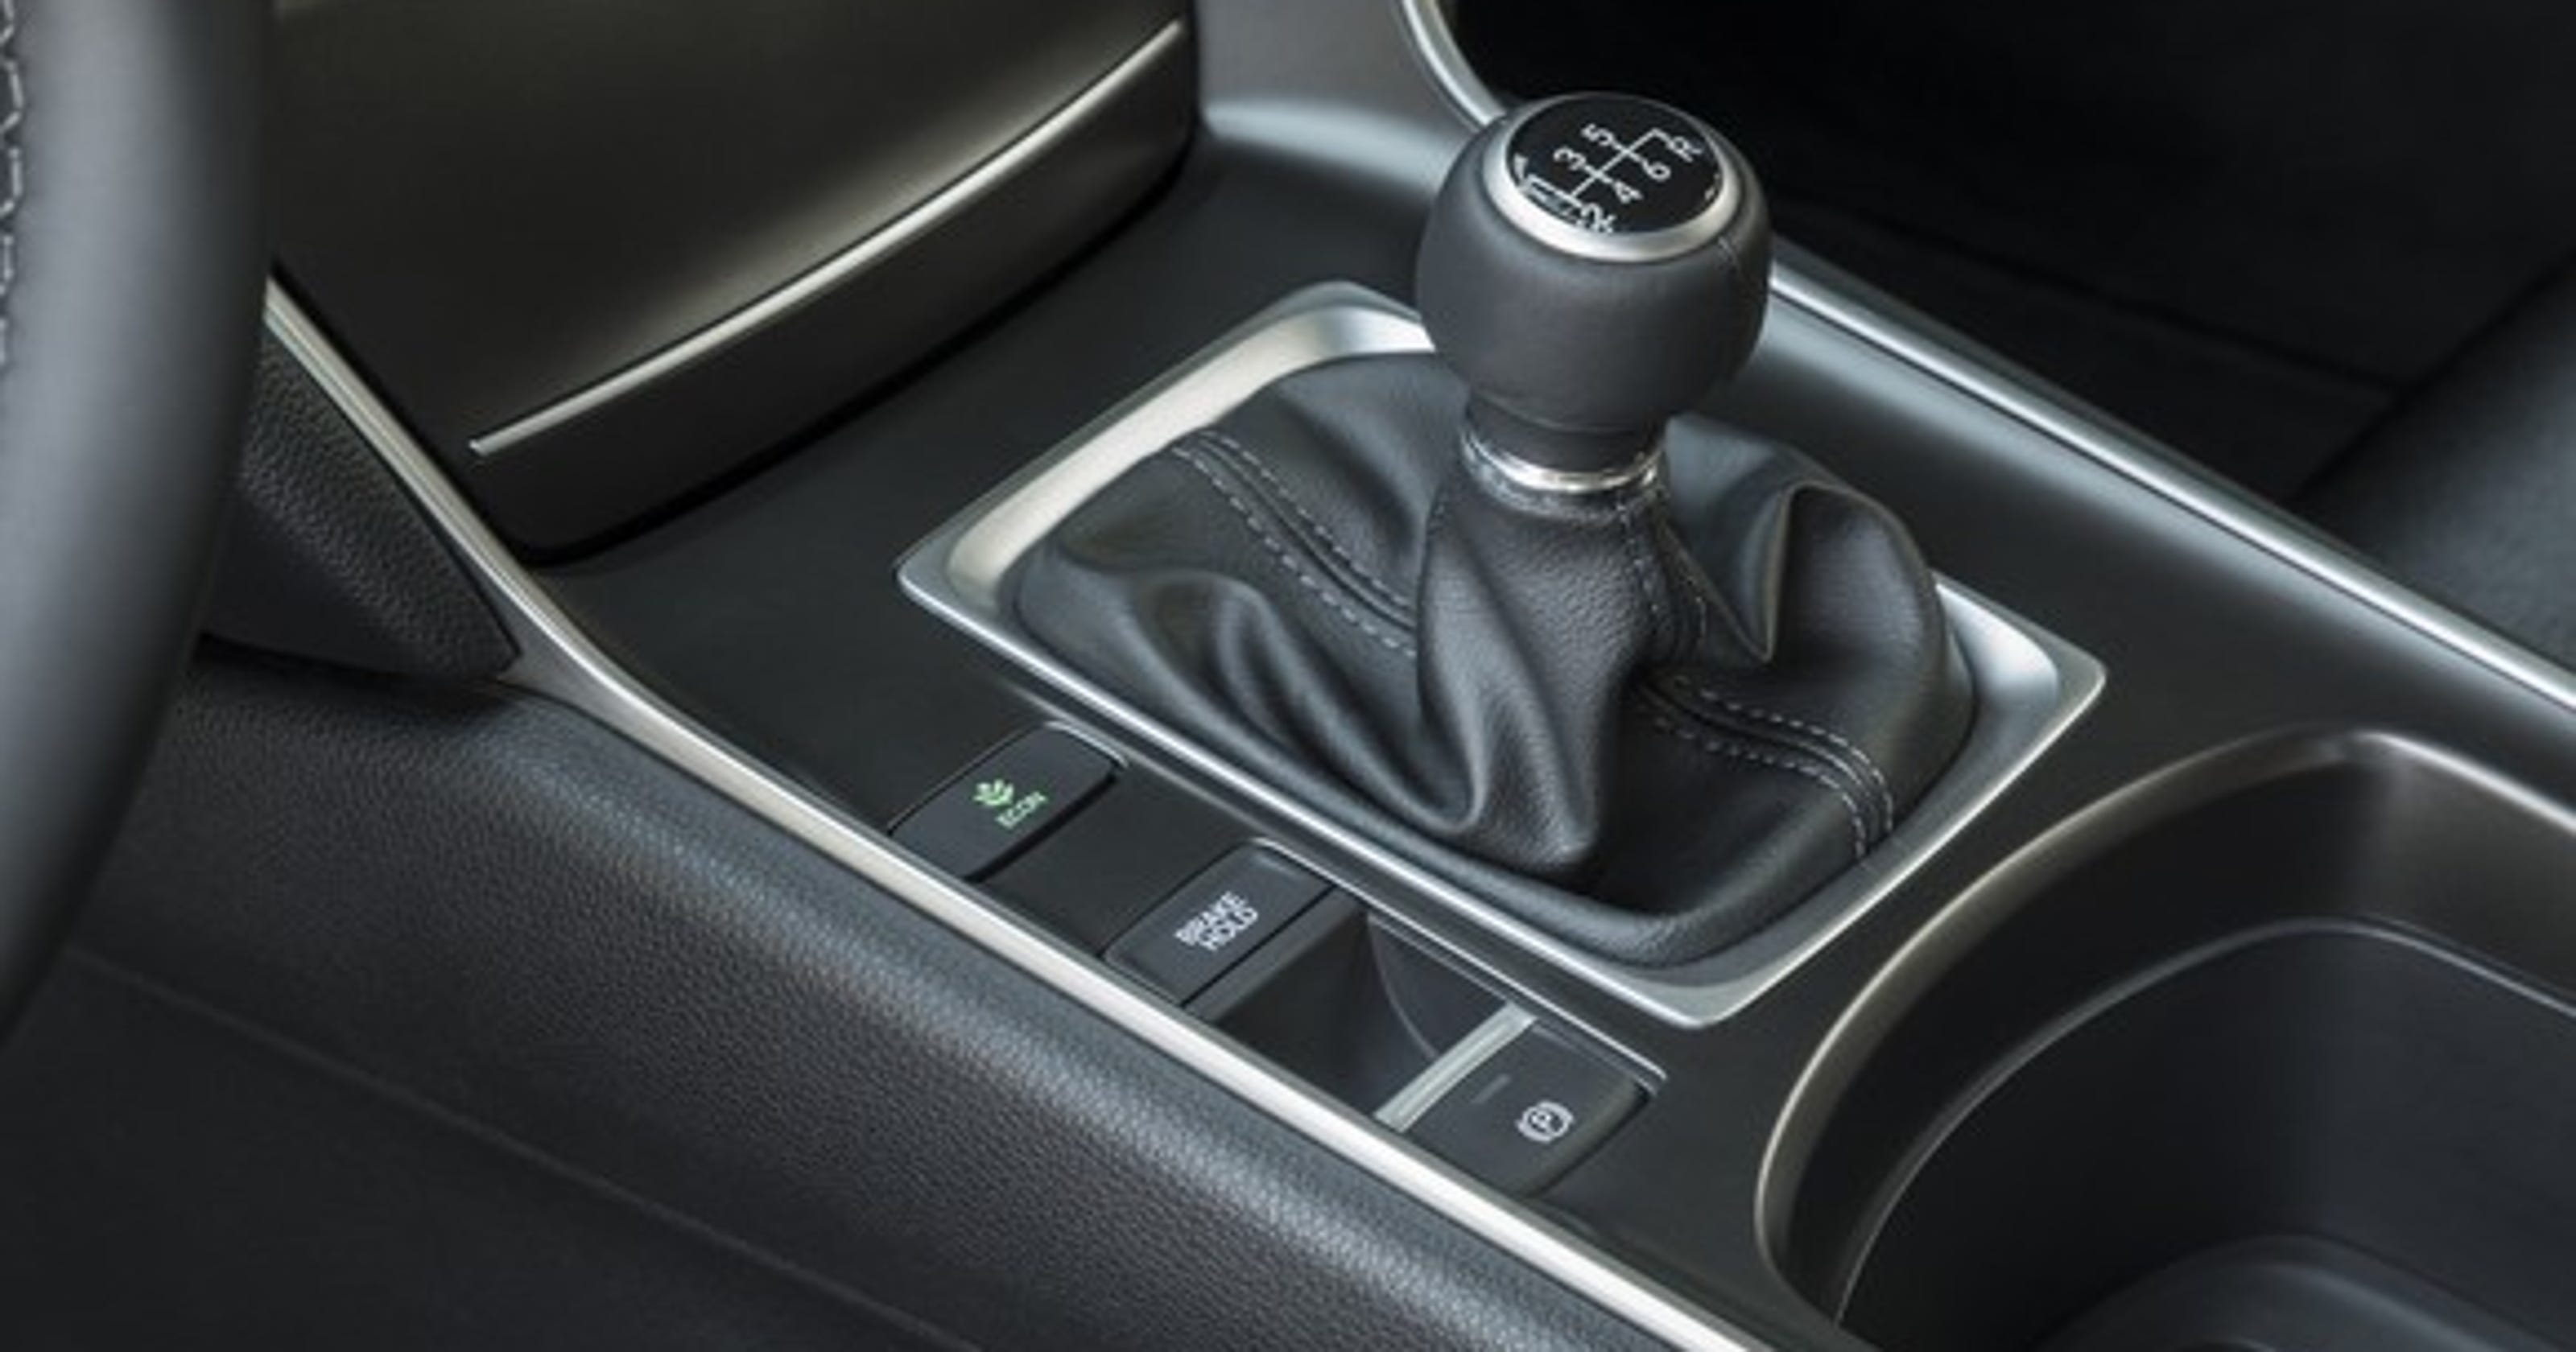 Stick Shifts Edmunds Offers Top Picks For Manual Transmissions Honda Accord Transmission